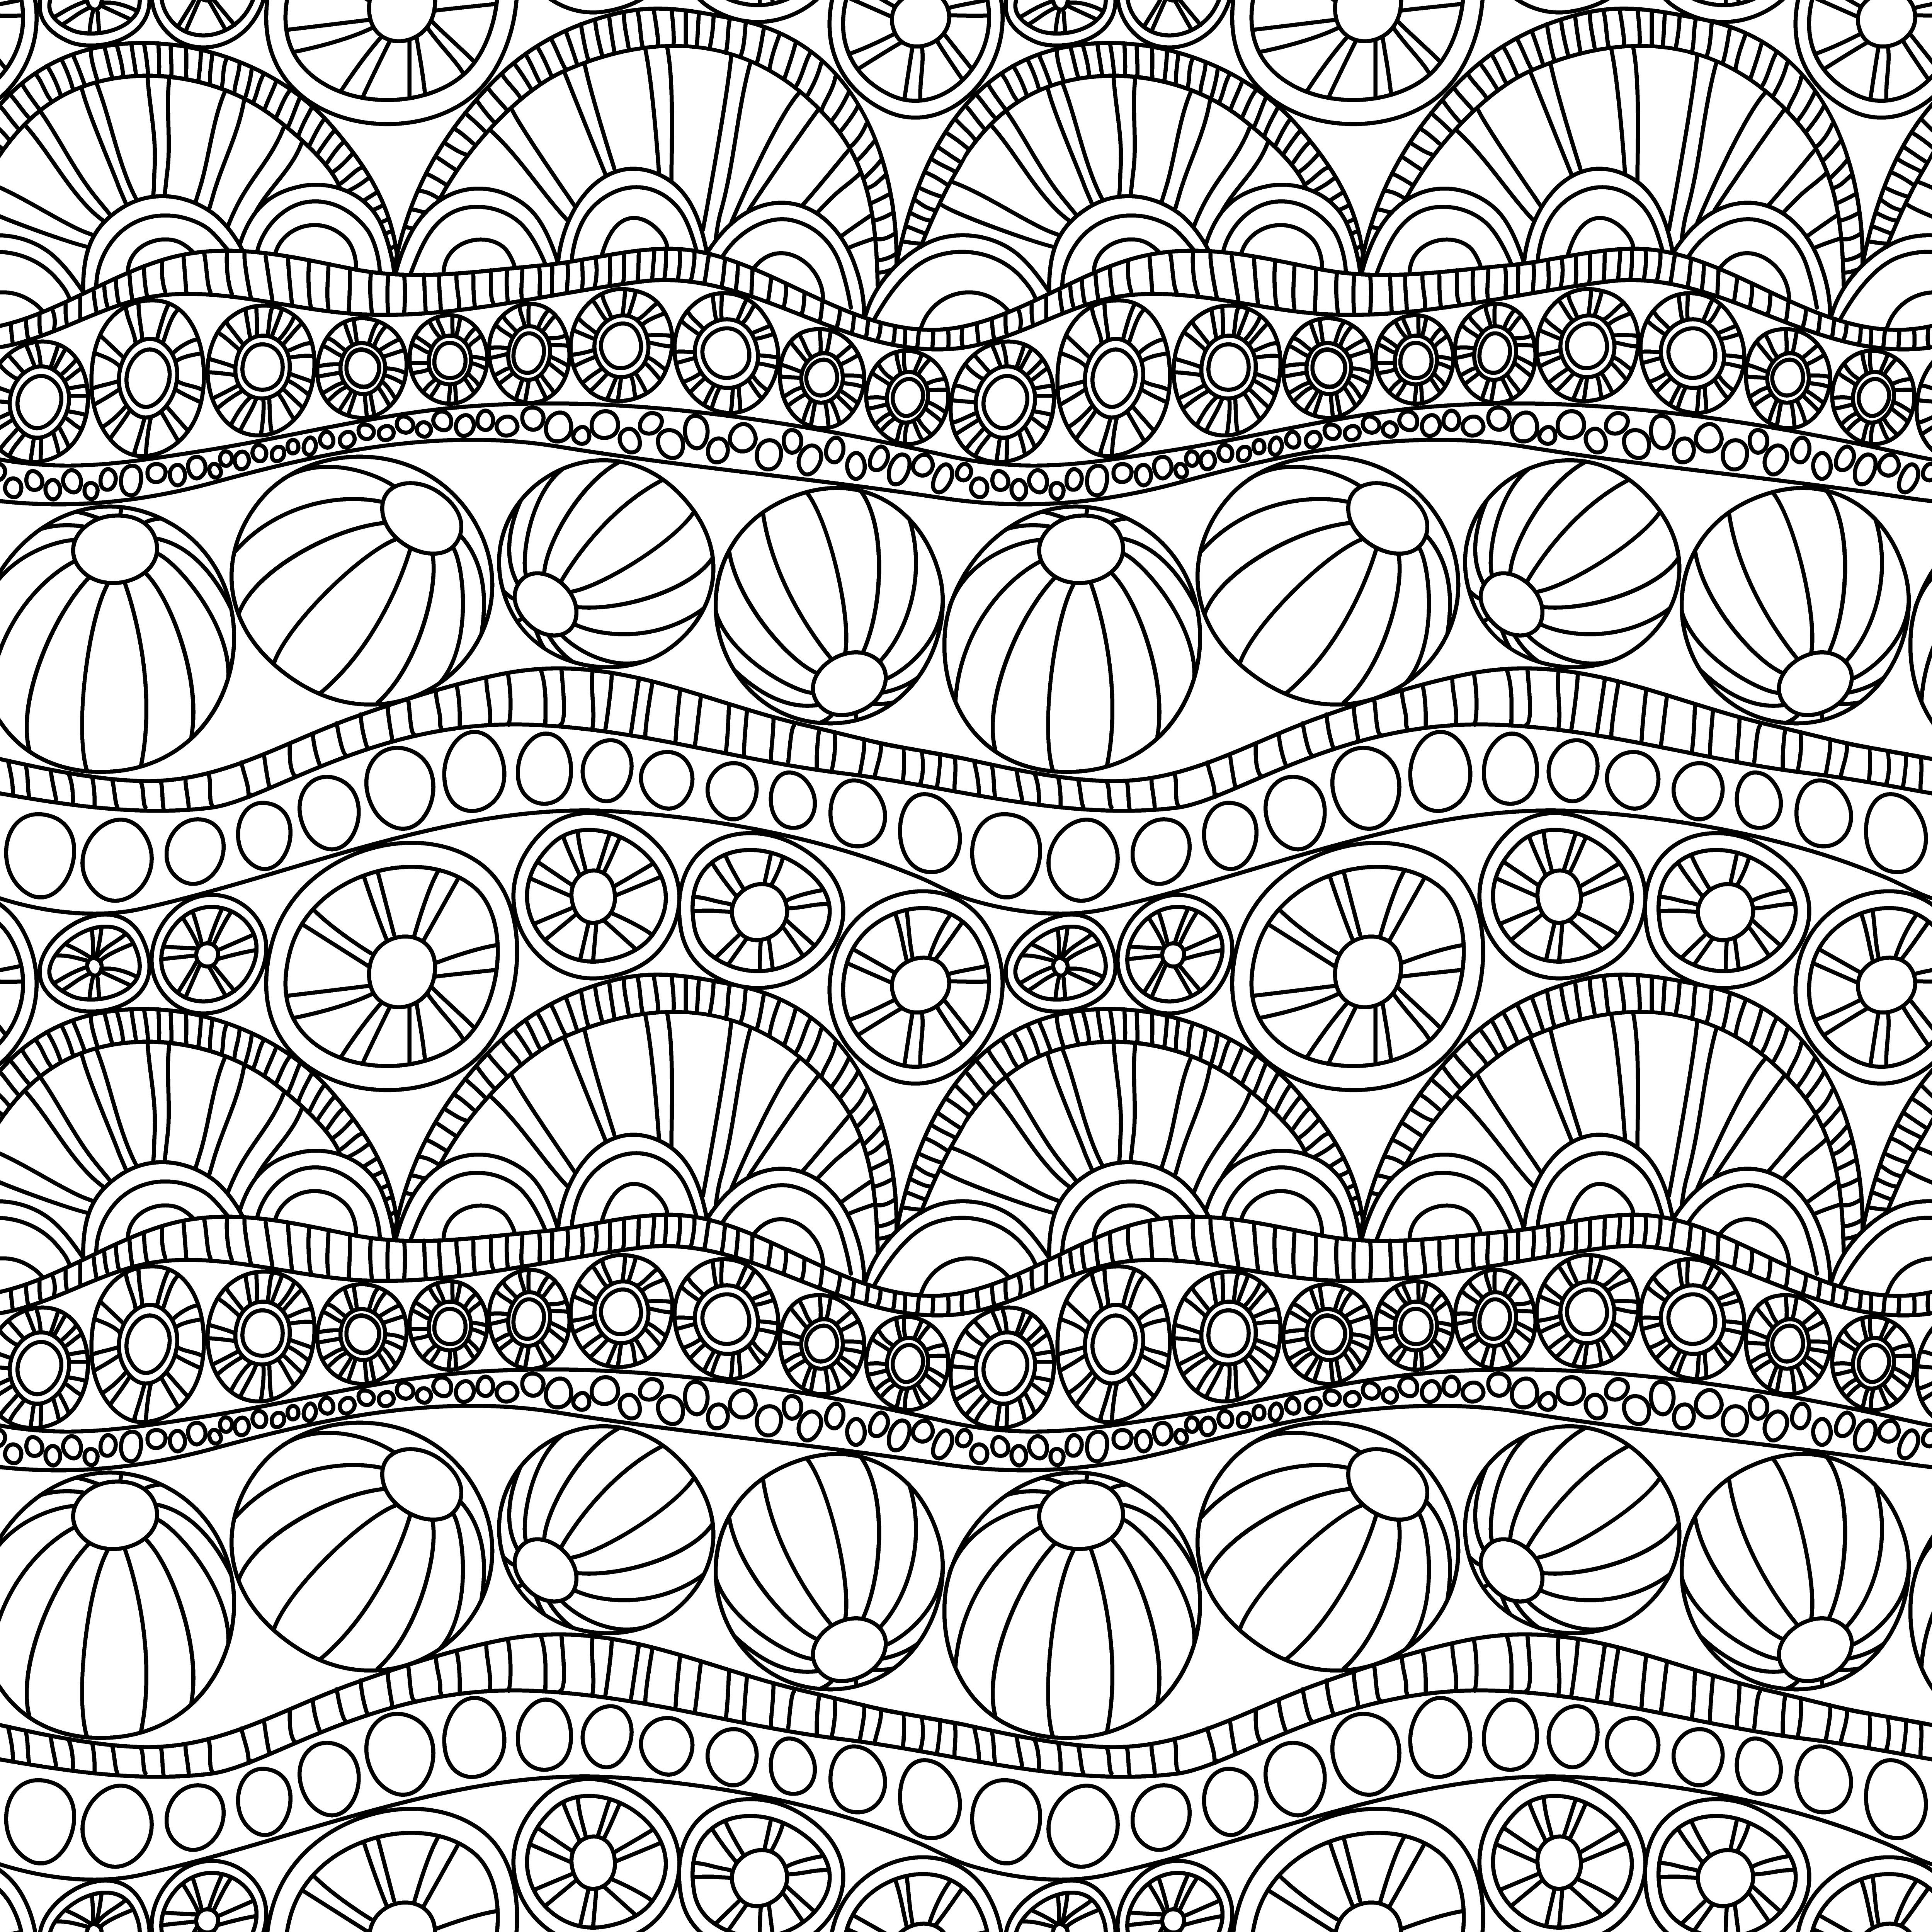 abstract colouring in doodle abstract seamless ornament coloring page doodle colouring in abstract